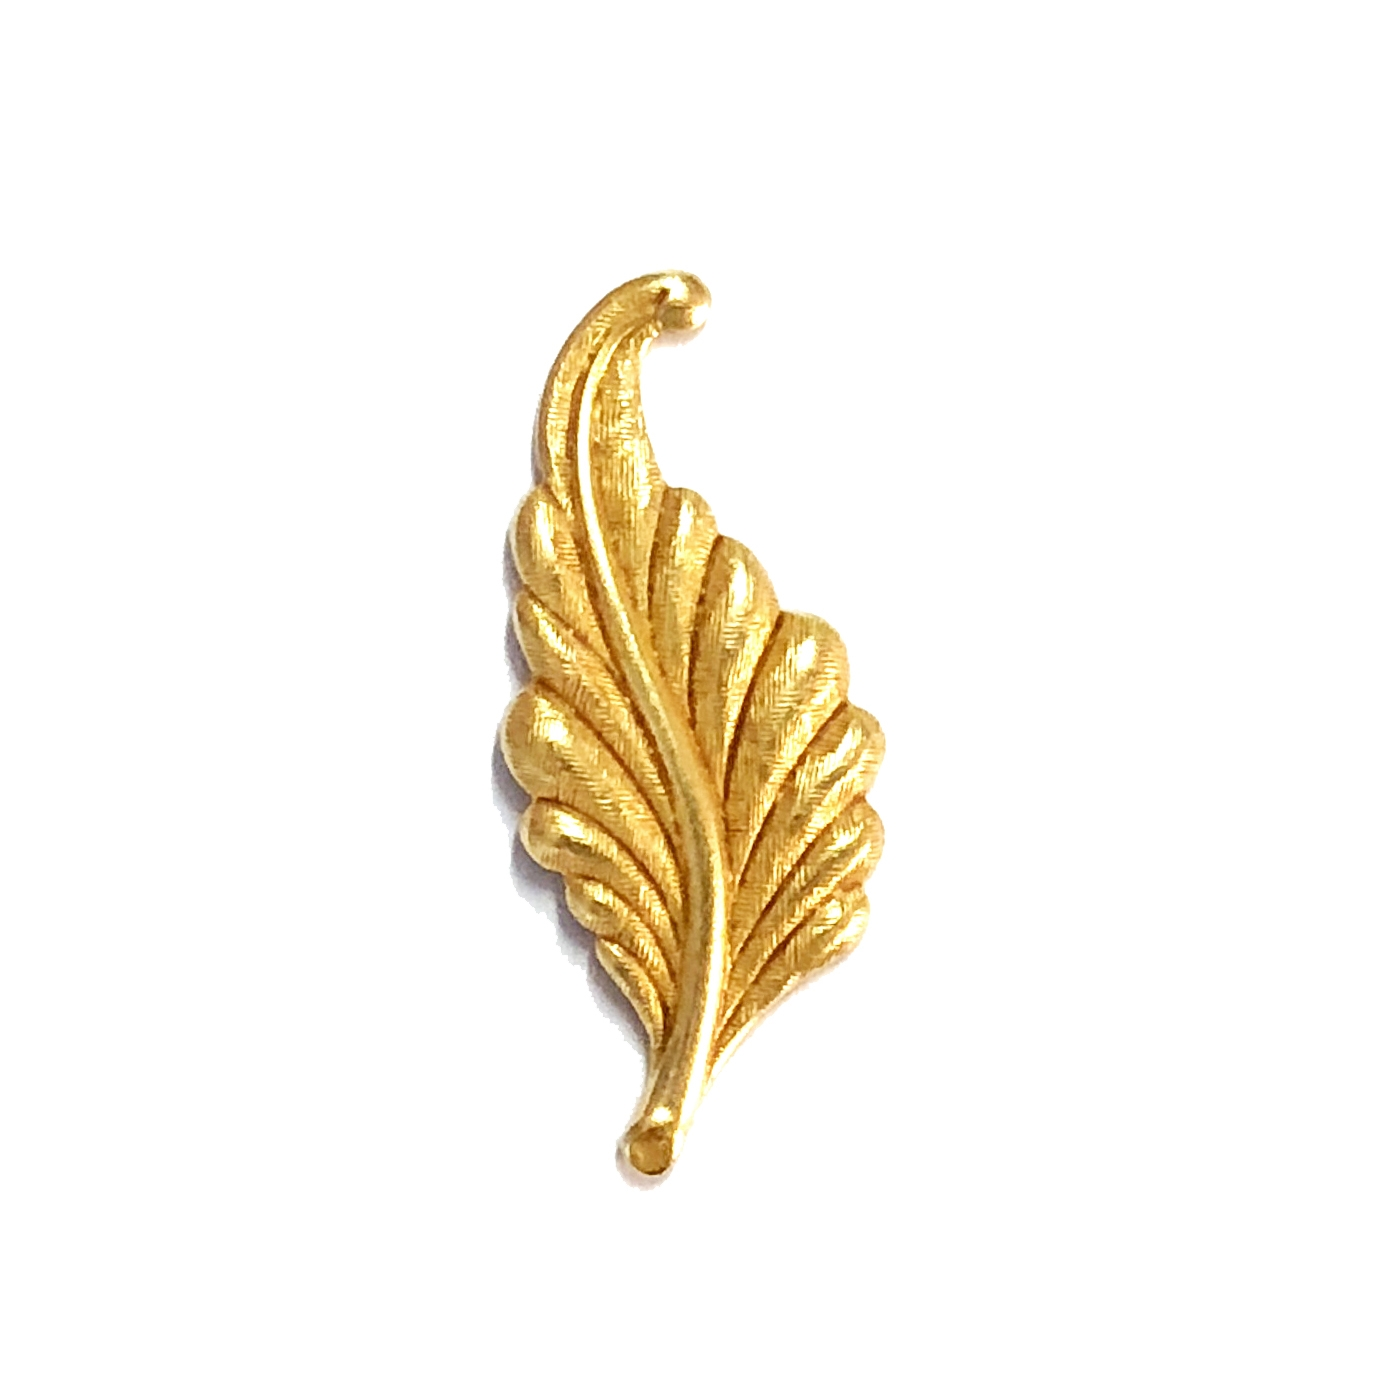 leaf stamping, classic gold, right facing, curved, brass, curved leaf, curved style, antique gold, leaf, 31mm, right, brass stamping, US made, nickel free, B'sue Boutiques, jewelry making, jewelry supplies, vintage supplies, jewelry findings, 08487